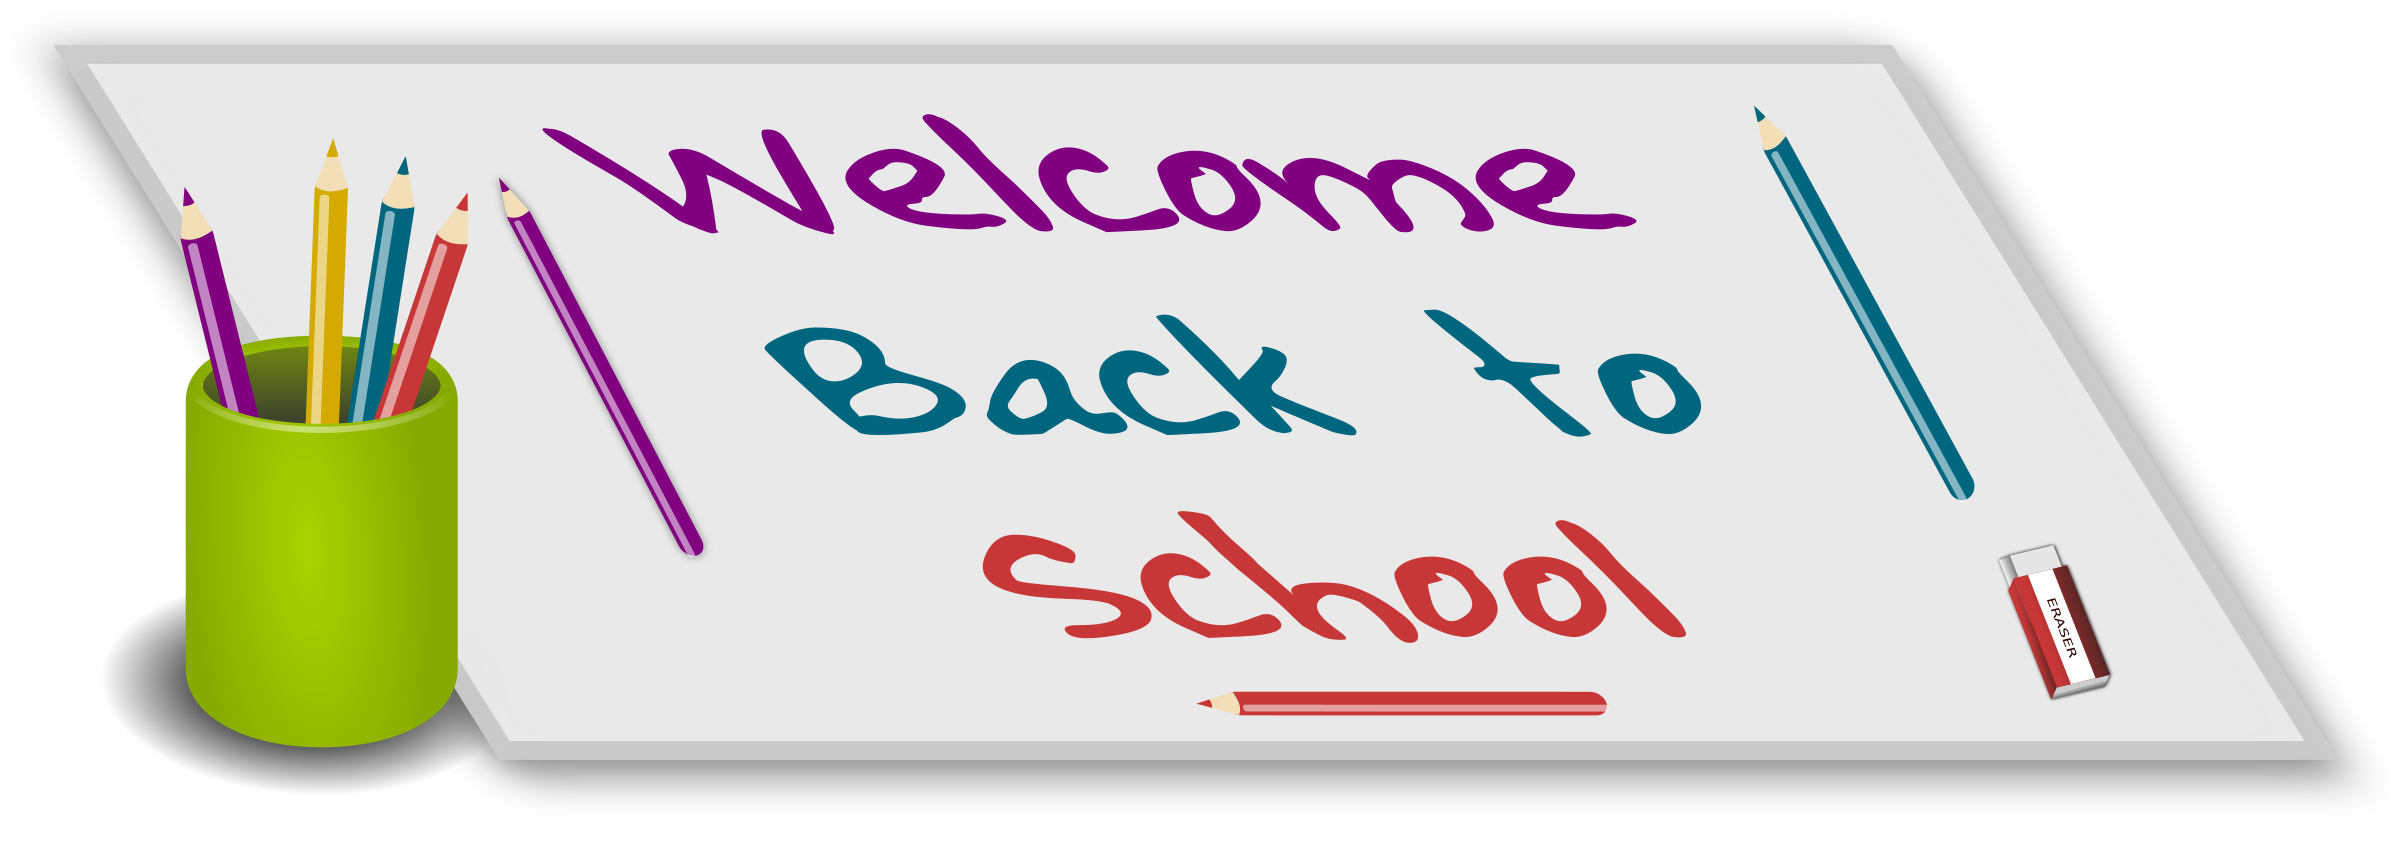 Welcome back school clipart graphic freeuse library Clipart - Welcome Back to school graphic freeuse library